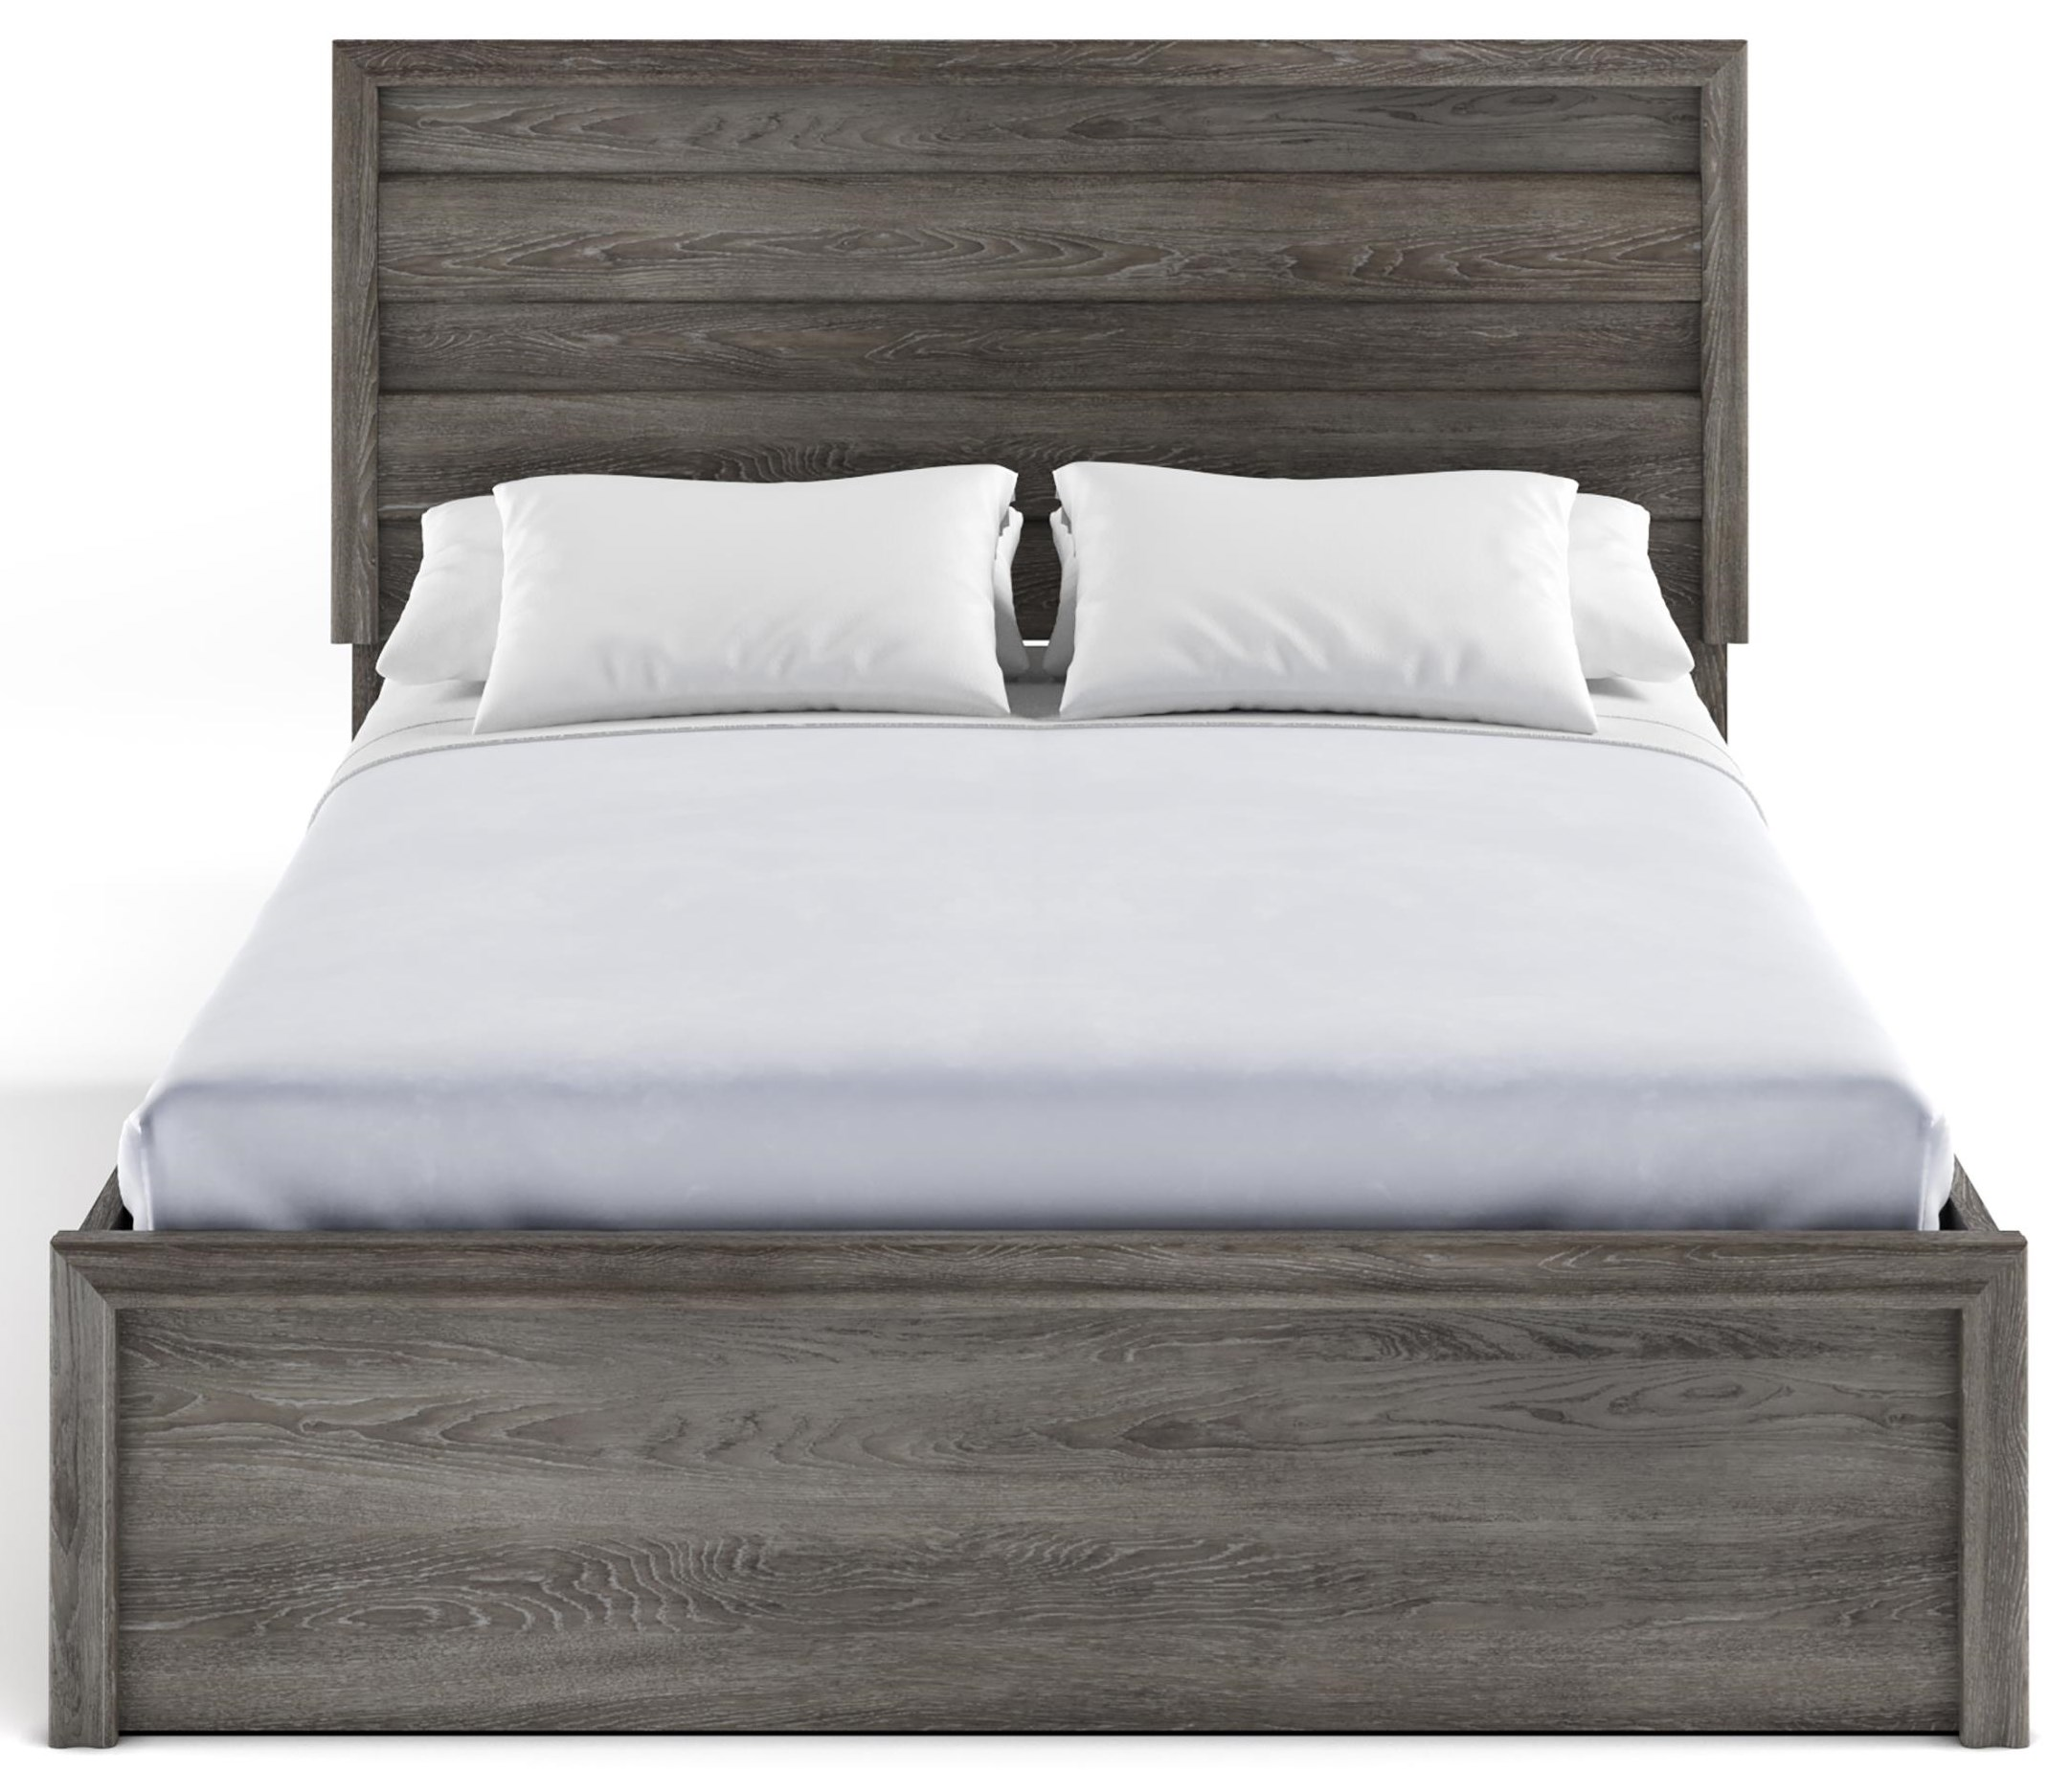 511 Queen Bed by Defehr at Stoney Creek Furniture